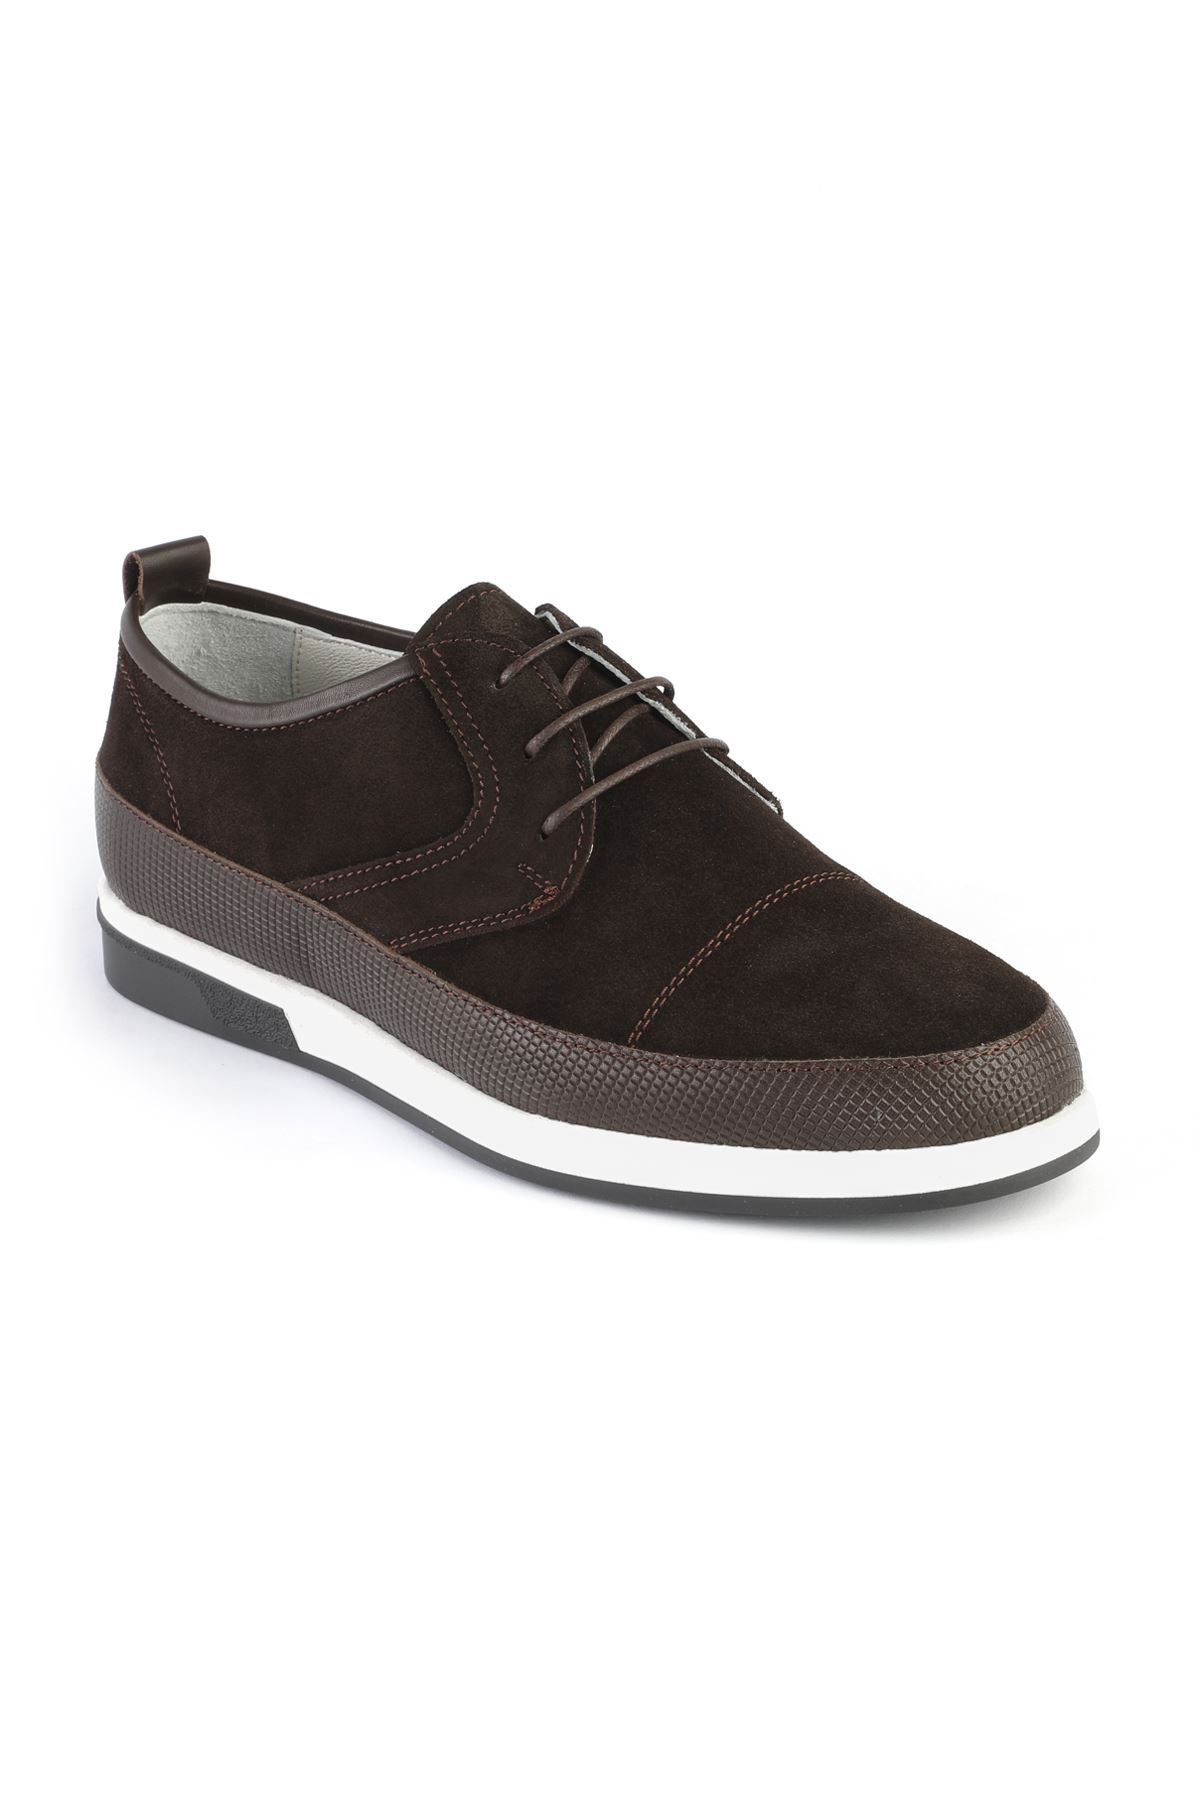 Libero 3367 Brown Loafer Shoes